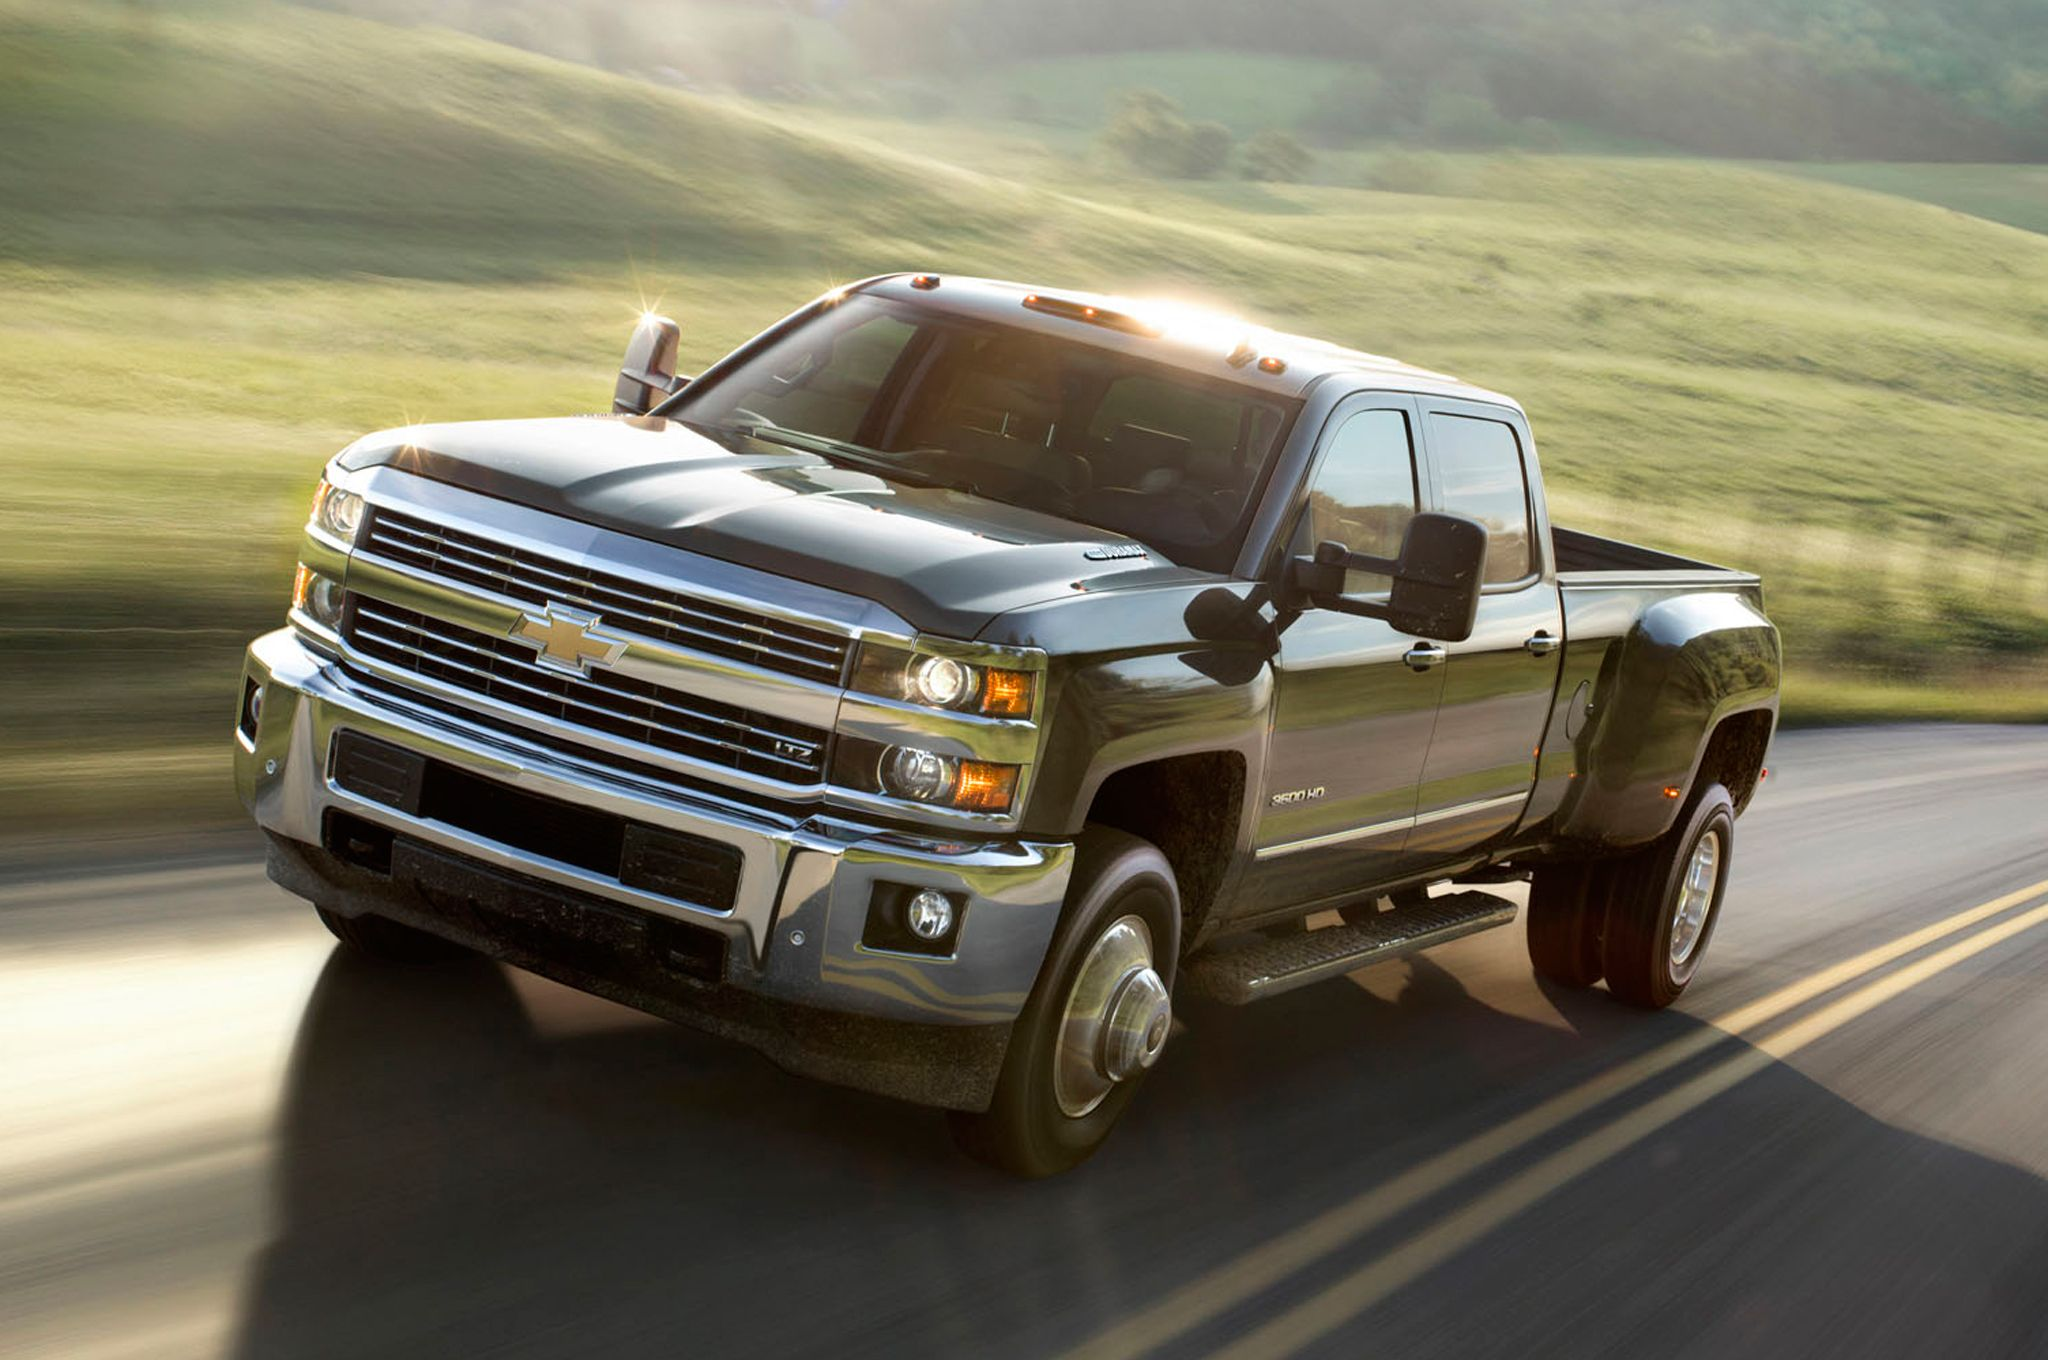 The 25 best silverado hd ideas on pinterest 2012 chevy silverado chevy silverado hd and 2015 chevy silverado